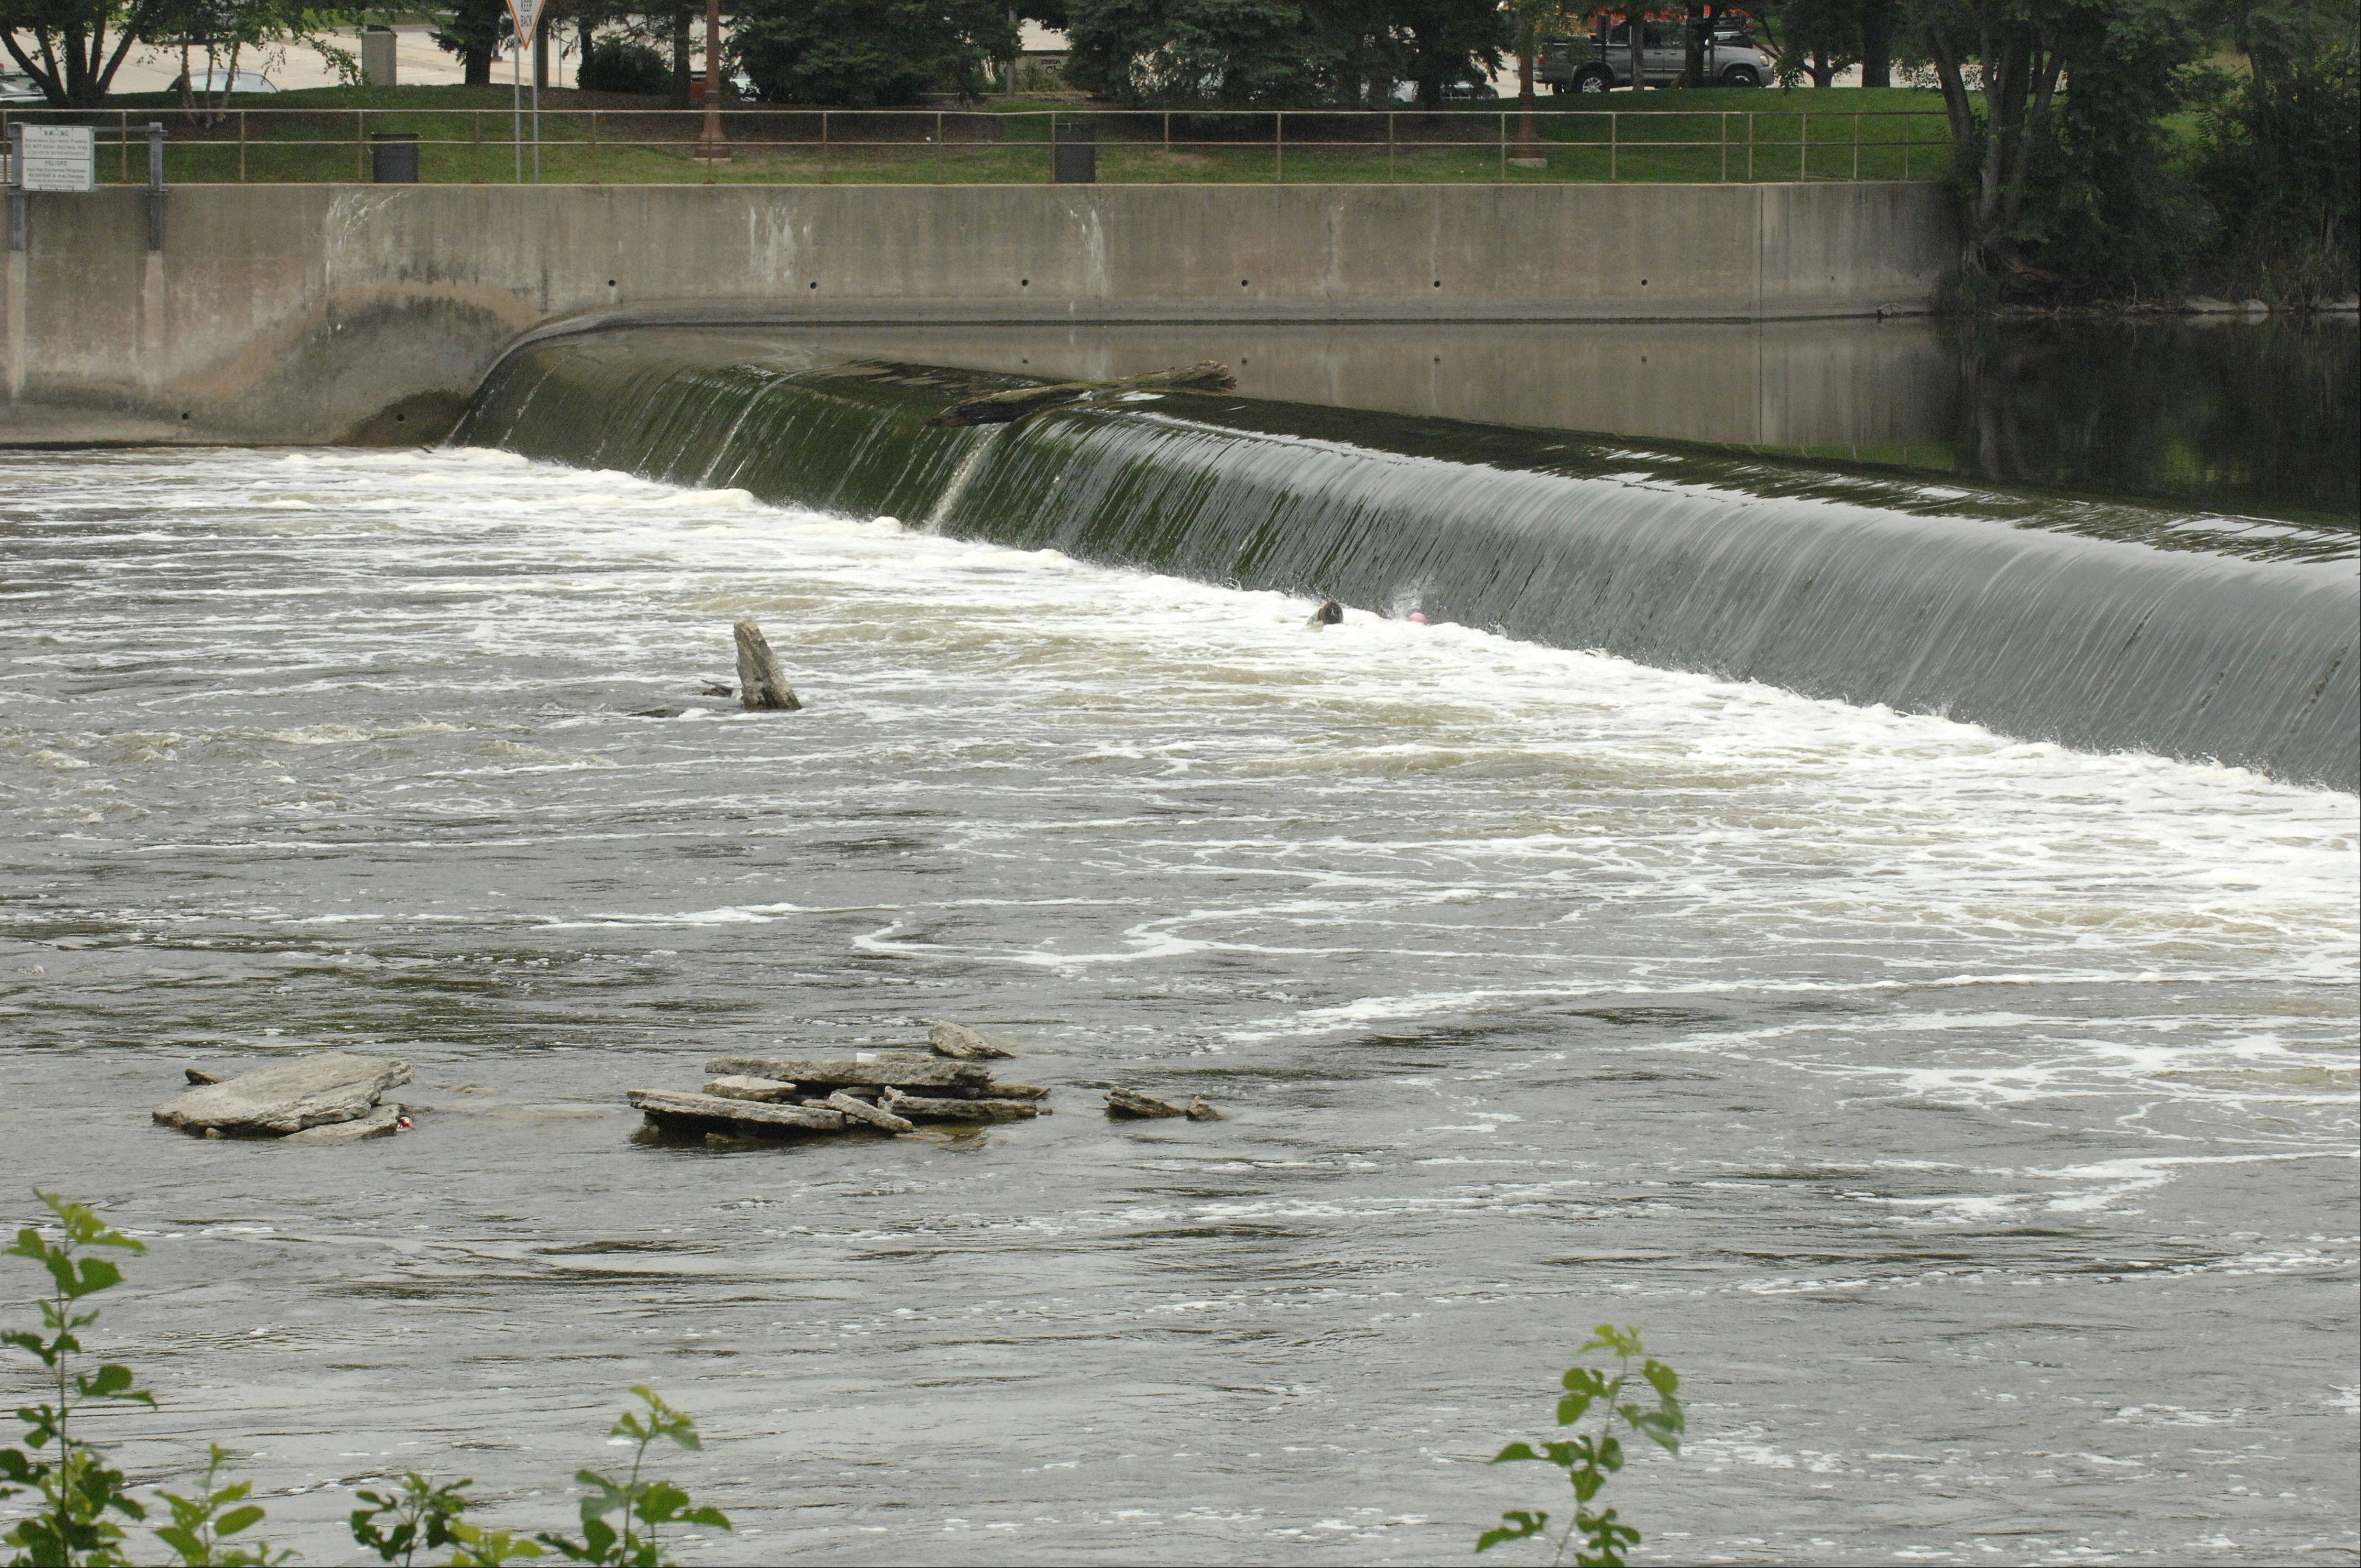 A man and boy were pulled from the Fox River near the Geneva dam by a passing group of bicyclists on Aug. 5. The man died.